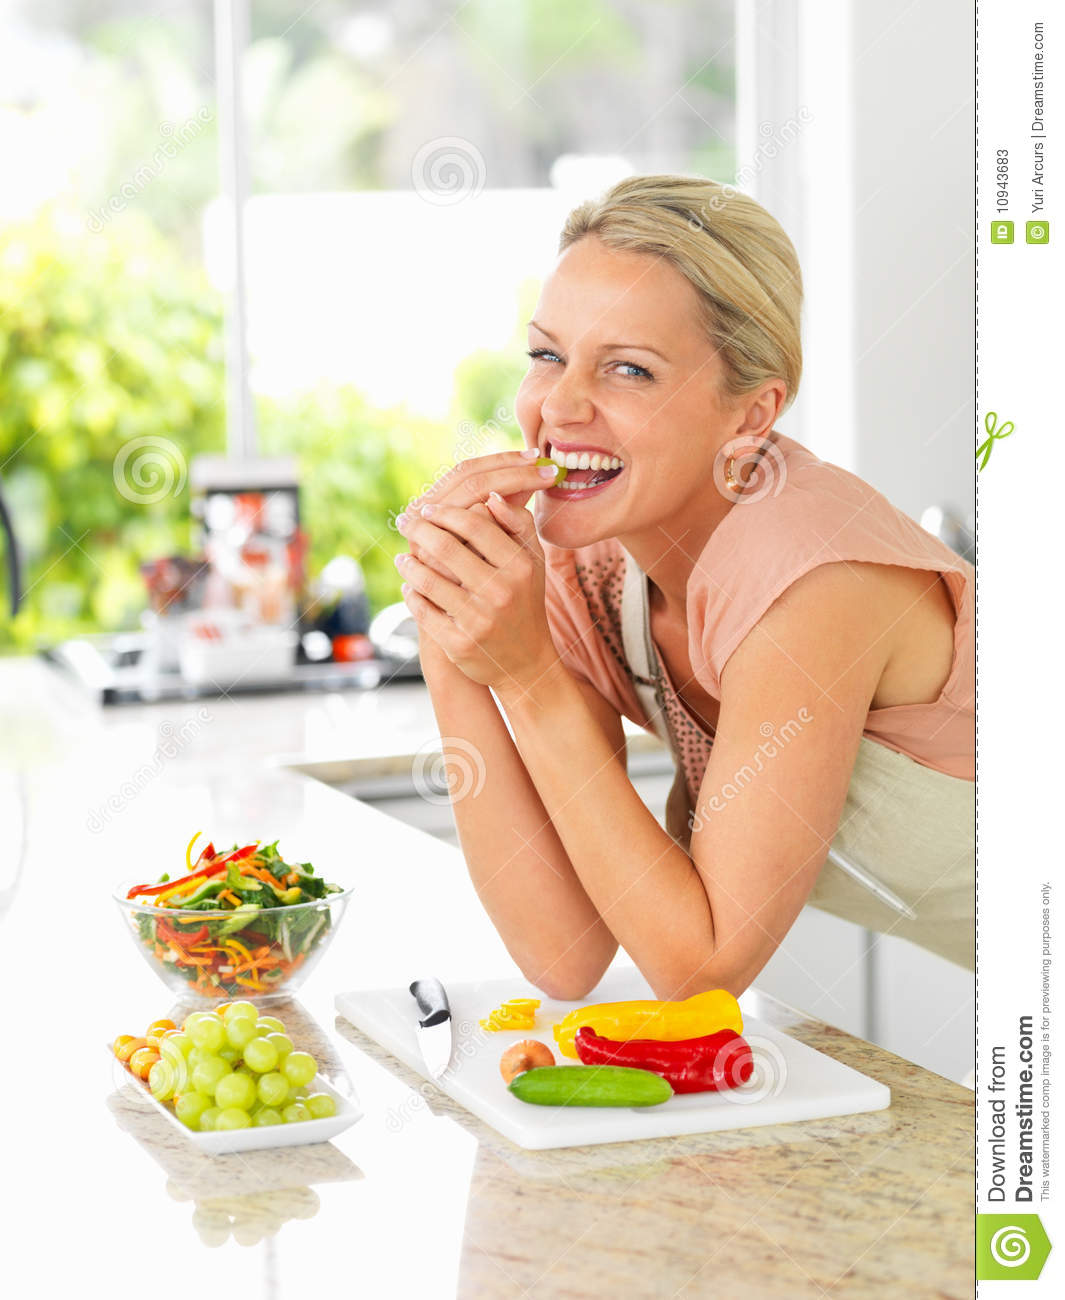 Women Kitchen: Stock Photos: Happy Woman In The Kitchen Making A Salad